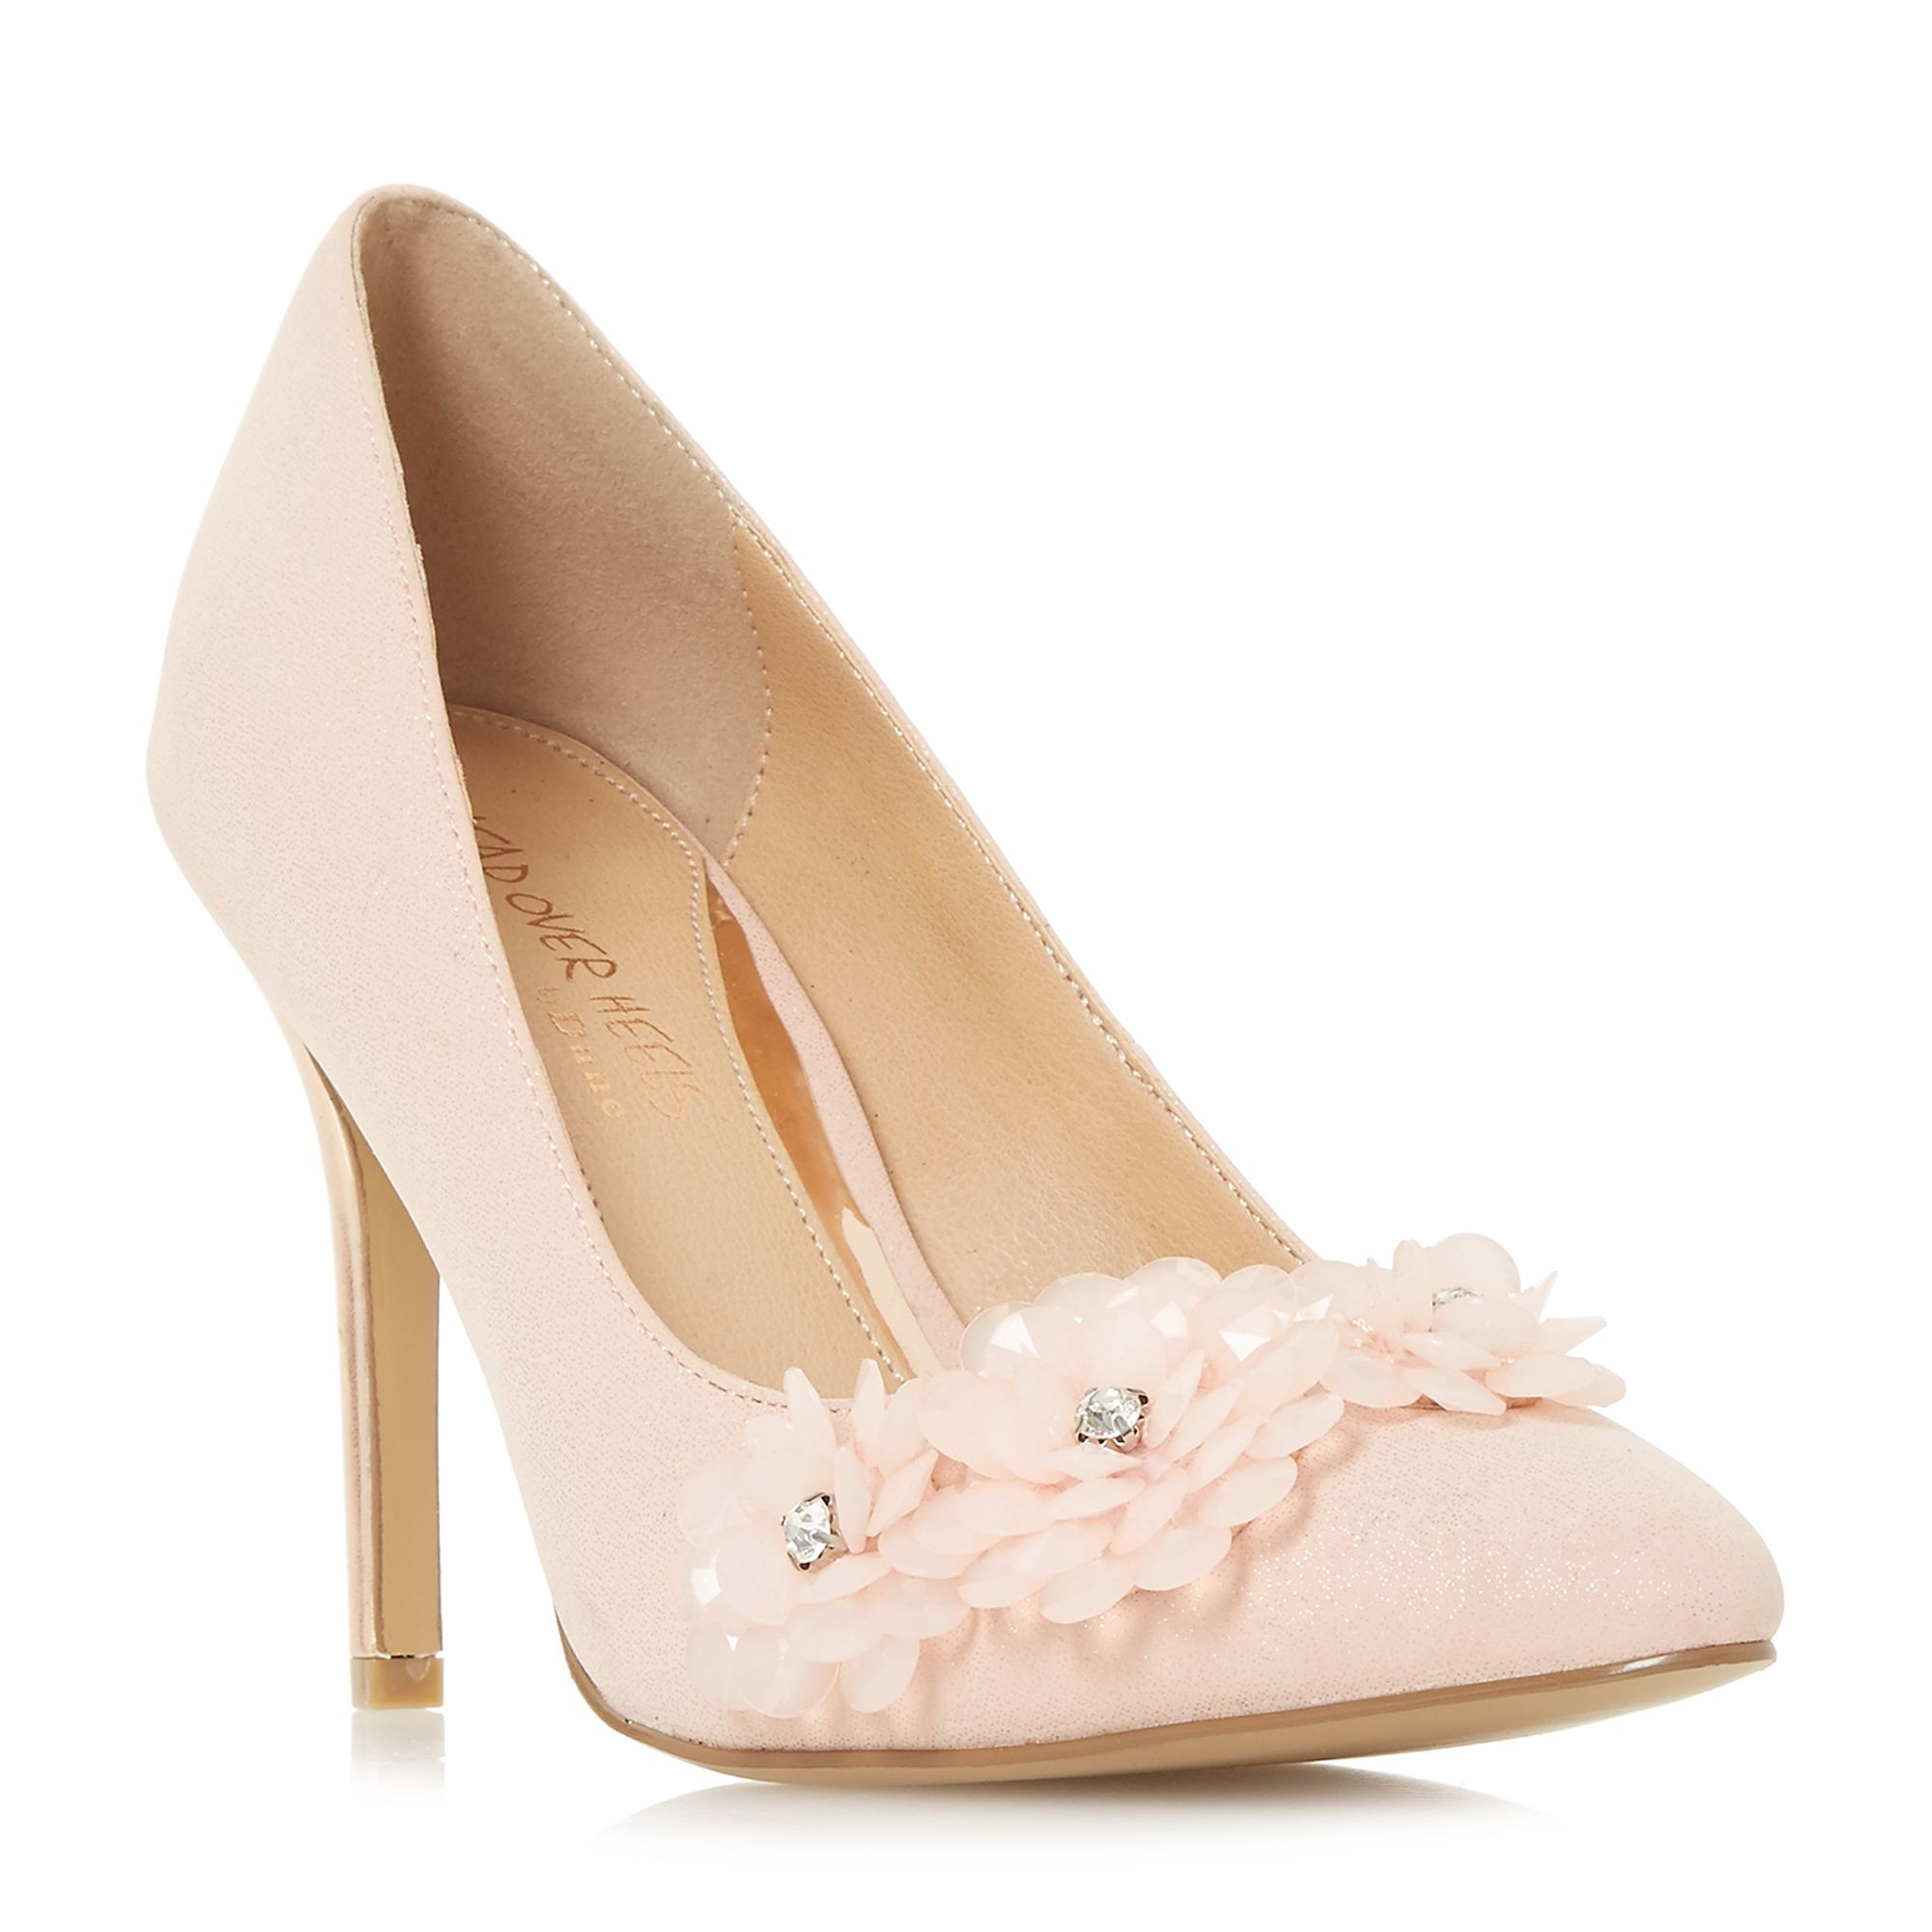 Head Over Heels Ayria Flower Encrusted Court Shoes, Nude